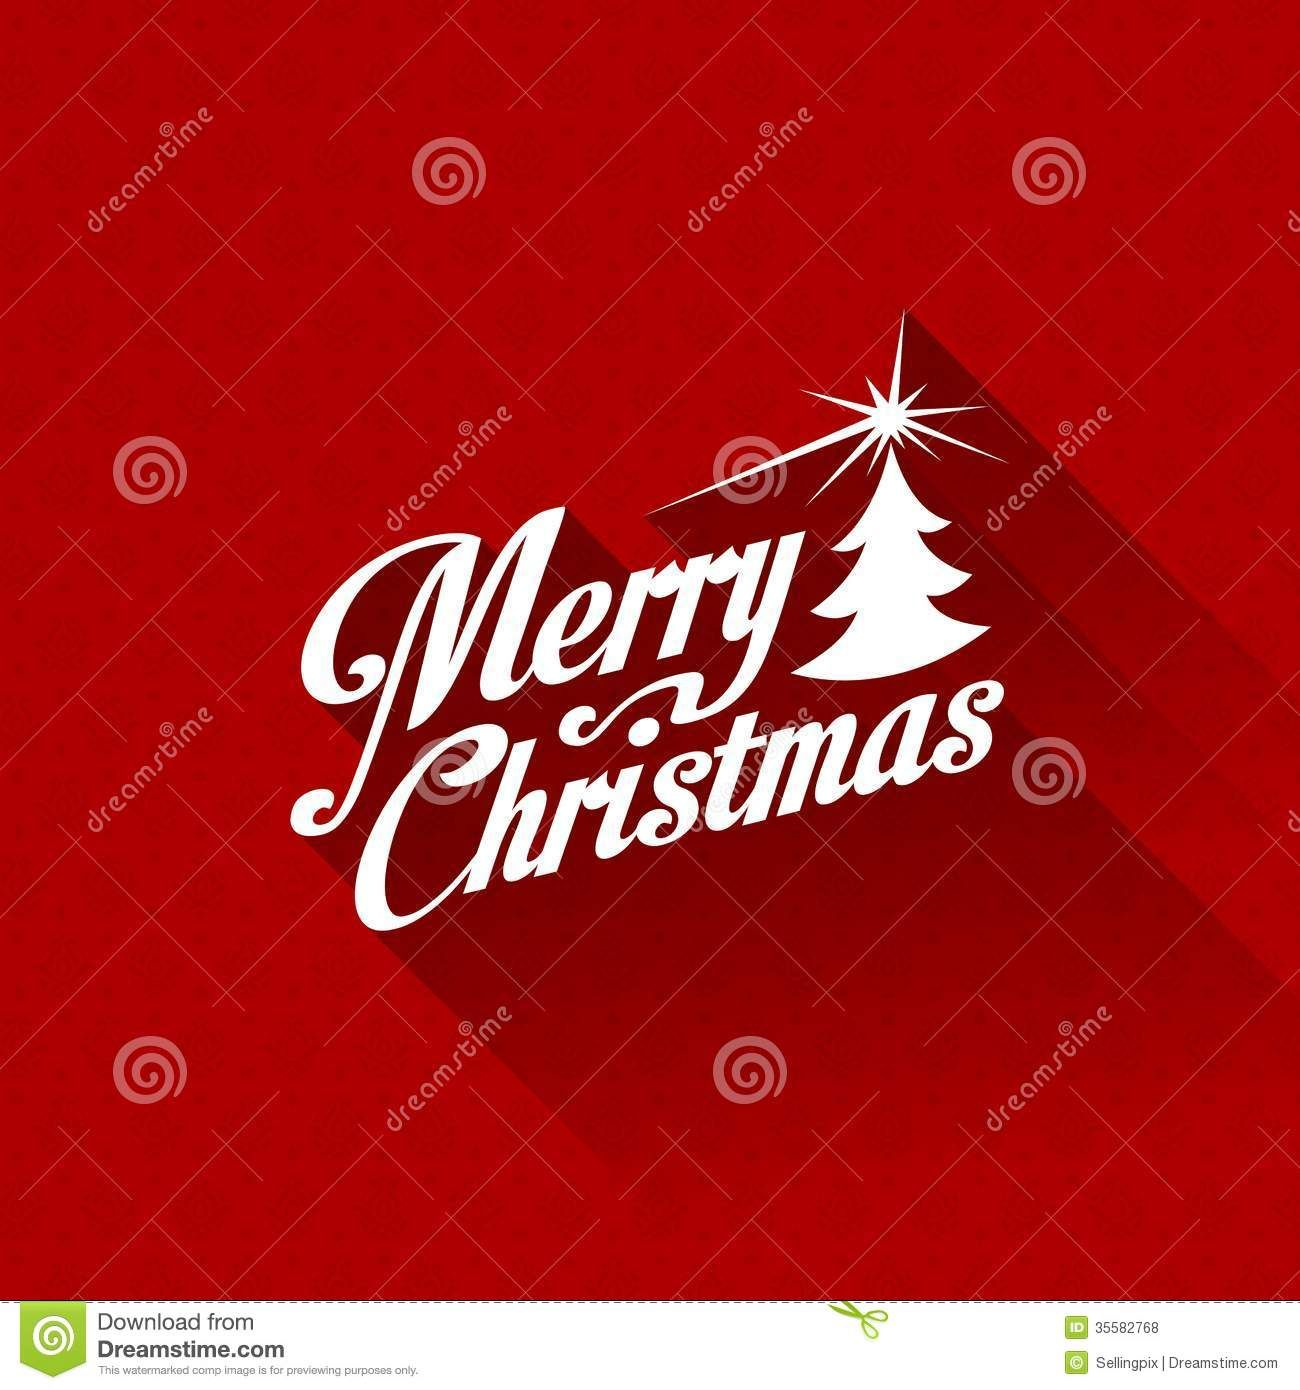 Merry Christmas Greeting Card Vector Design Templa Download From